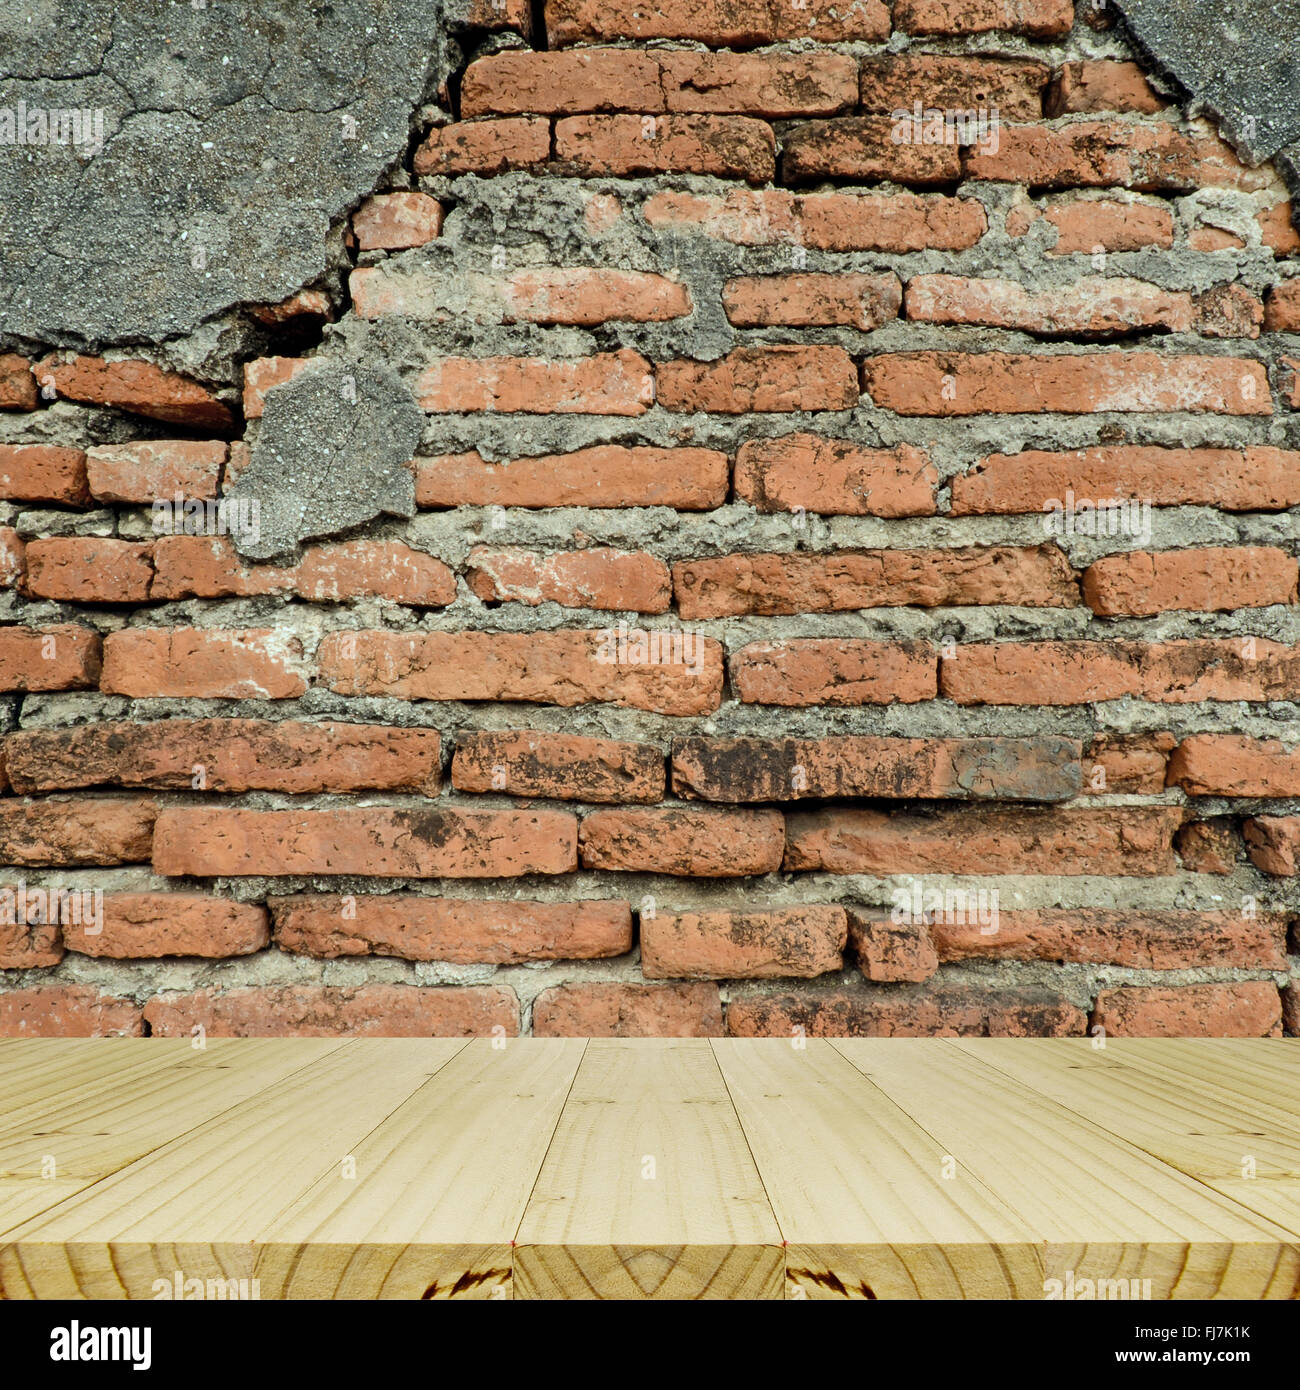 Plain wood table with hipster brick wall background stock photo - Plain Wood Table With Hipster Brick Wall Background